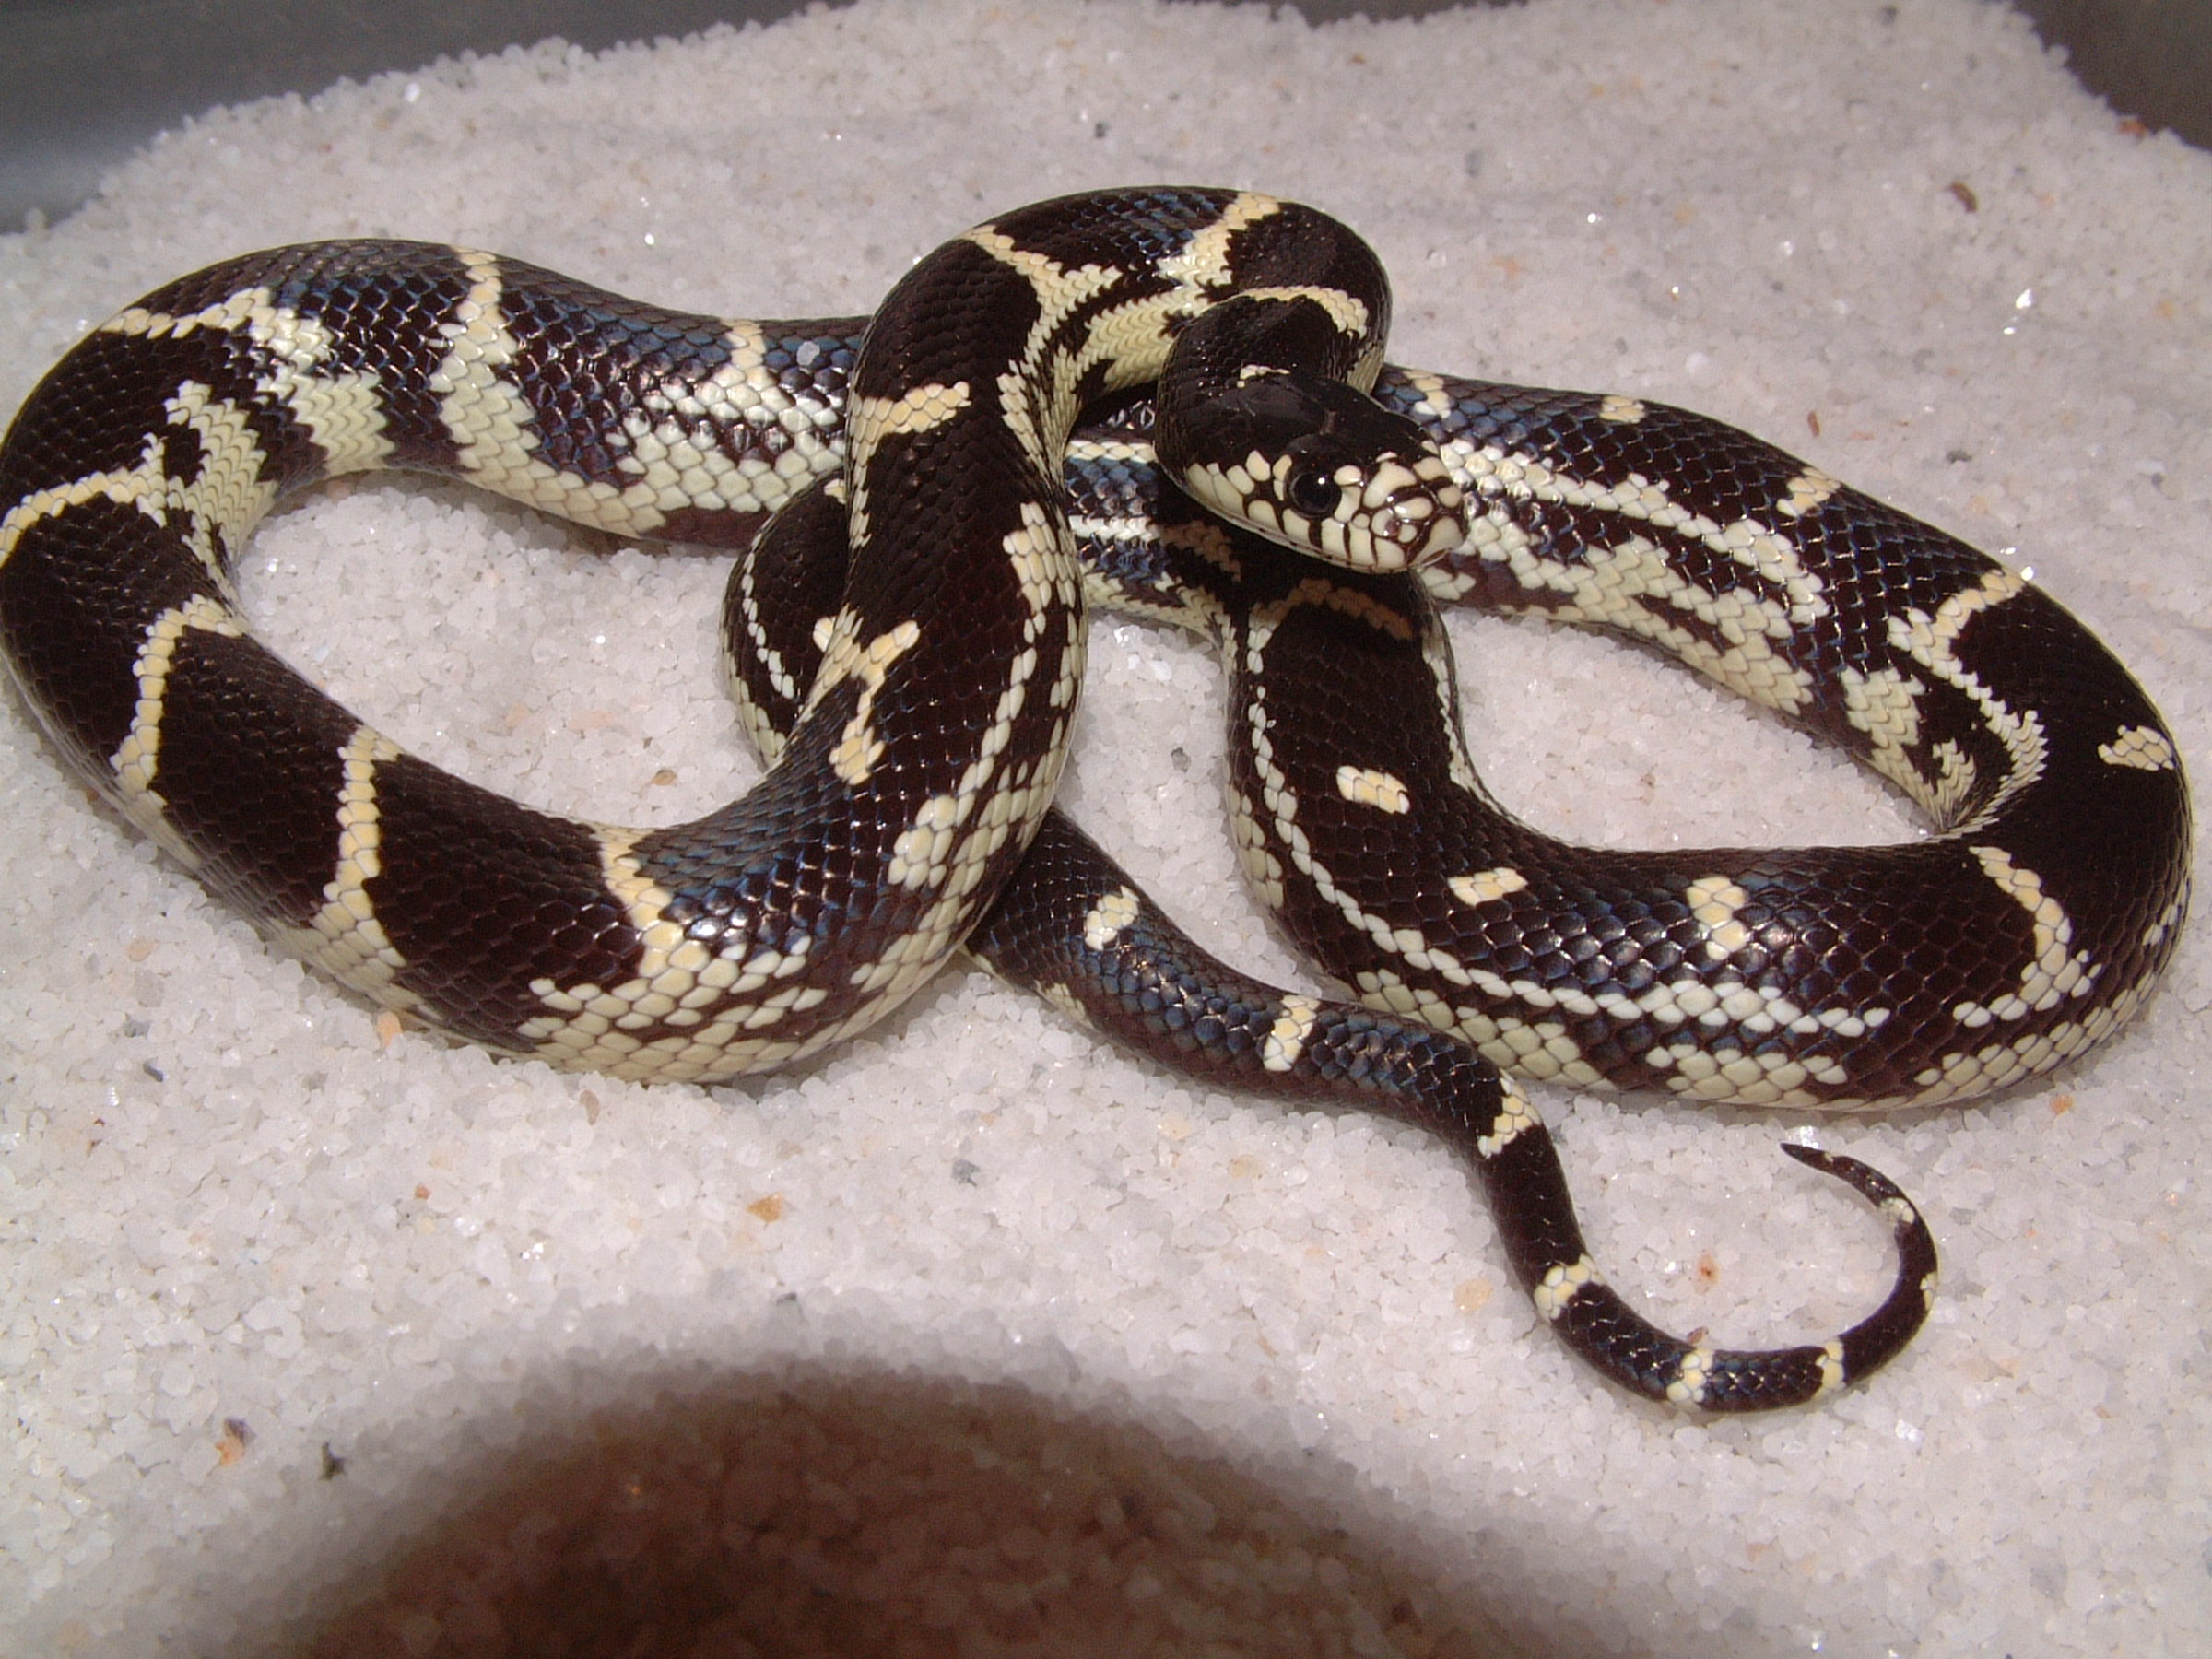 Pictures of king snakes